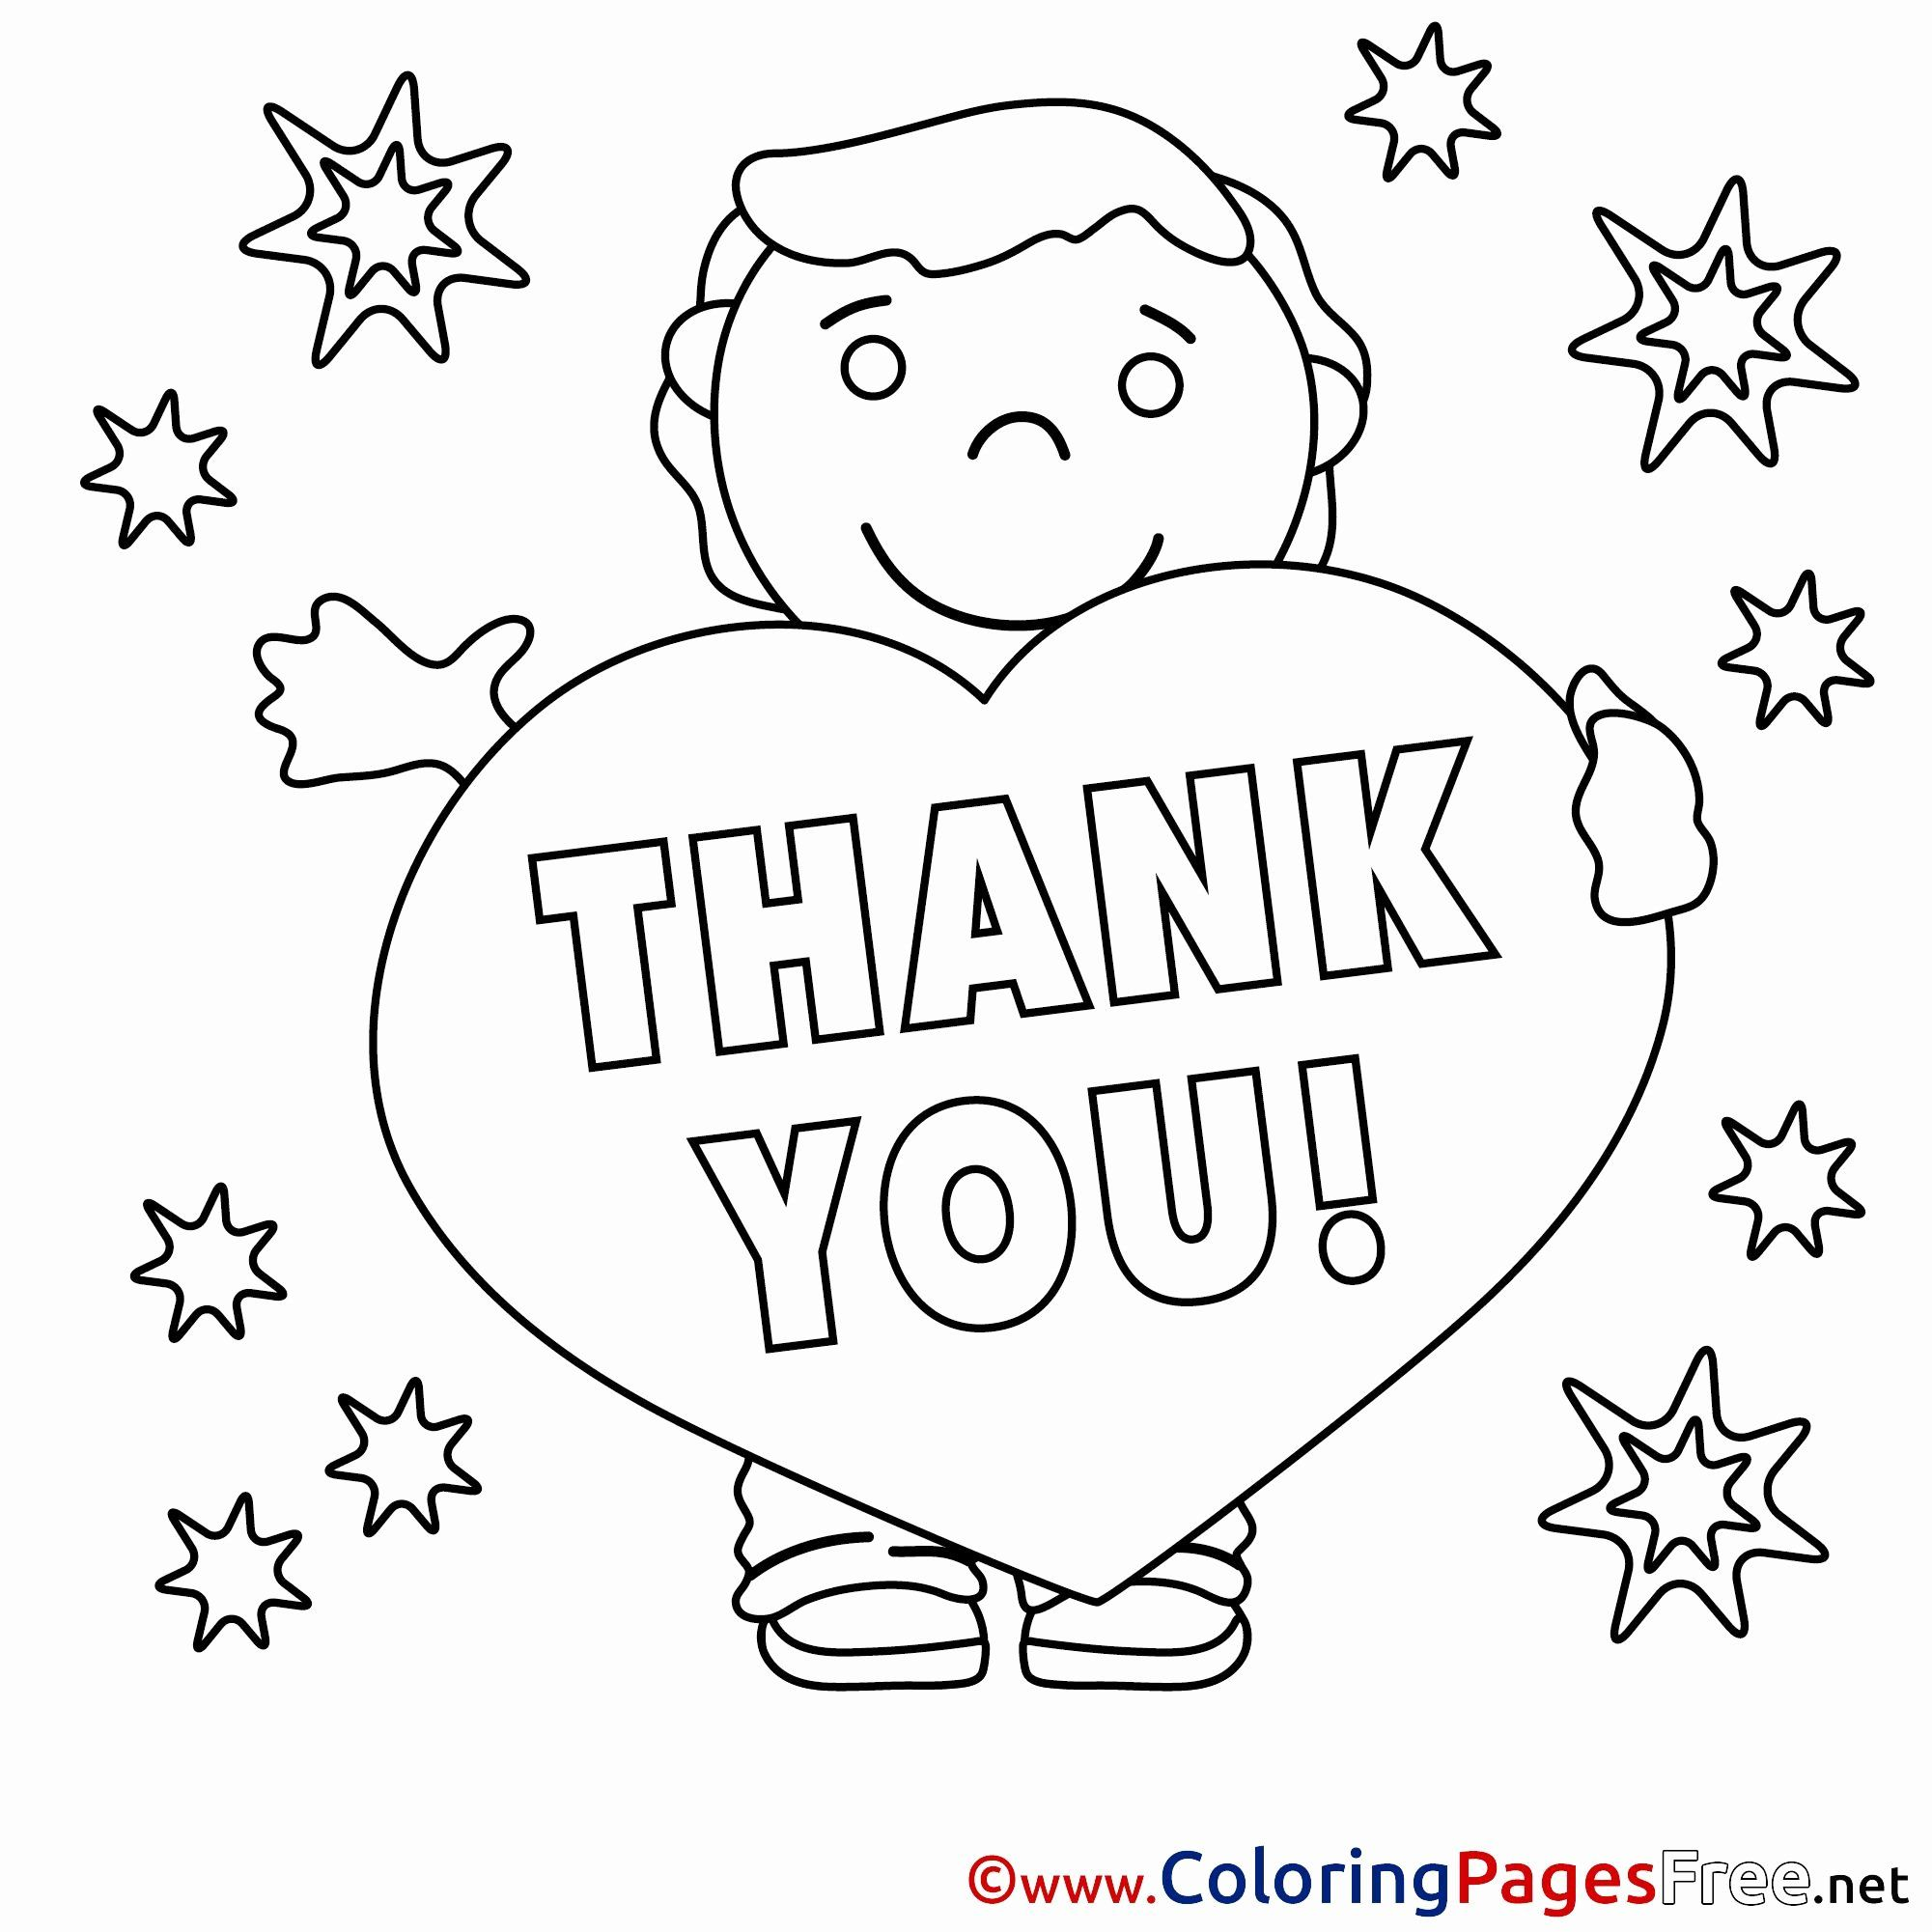 32 Thank You Coloring Page Coloring Pages Inspirational